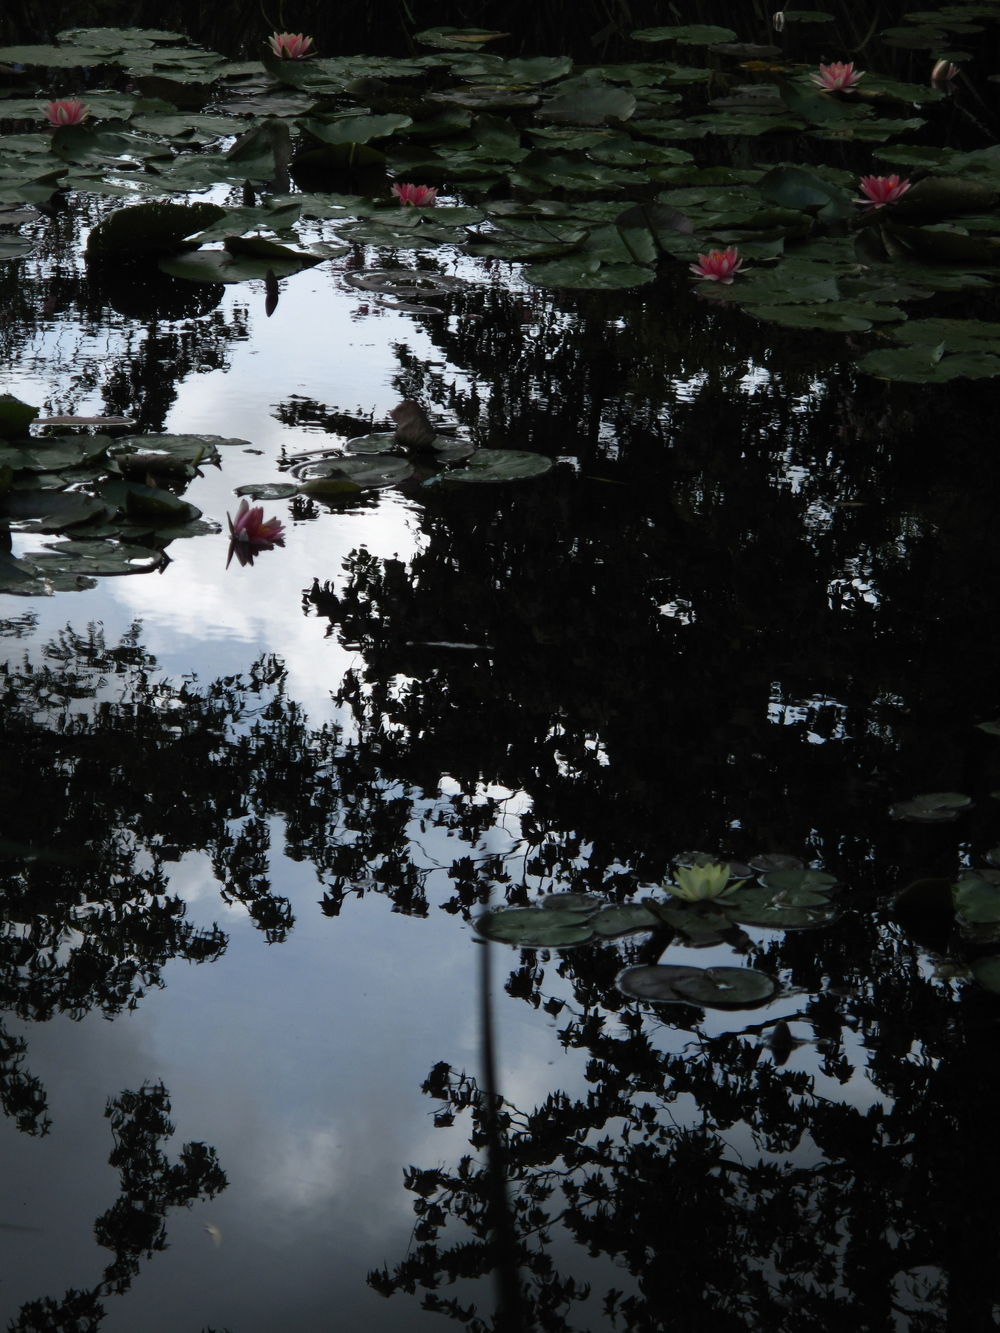 Giverny in late afternoon - tree shadows in the waterlily pond.